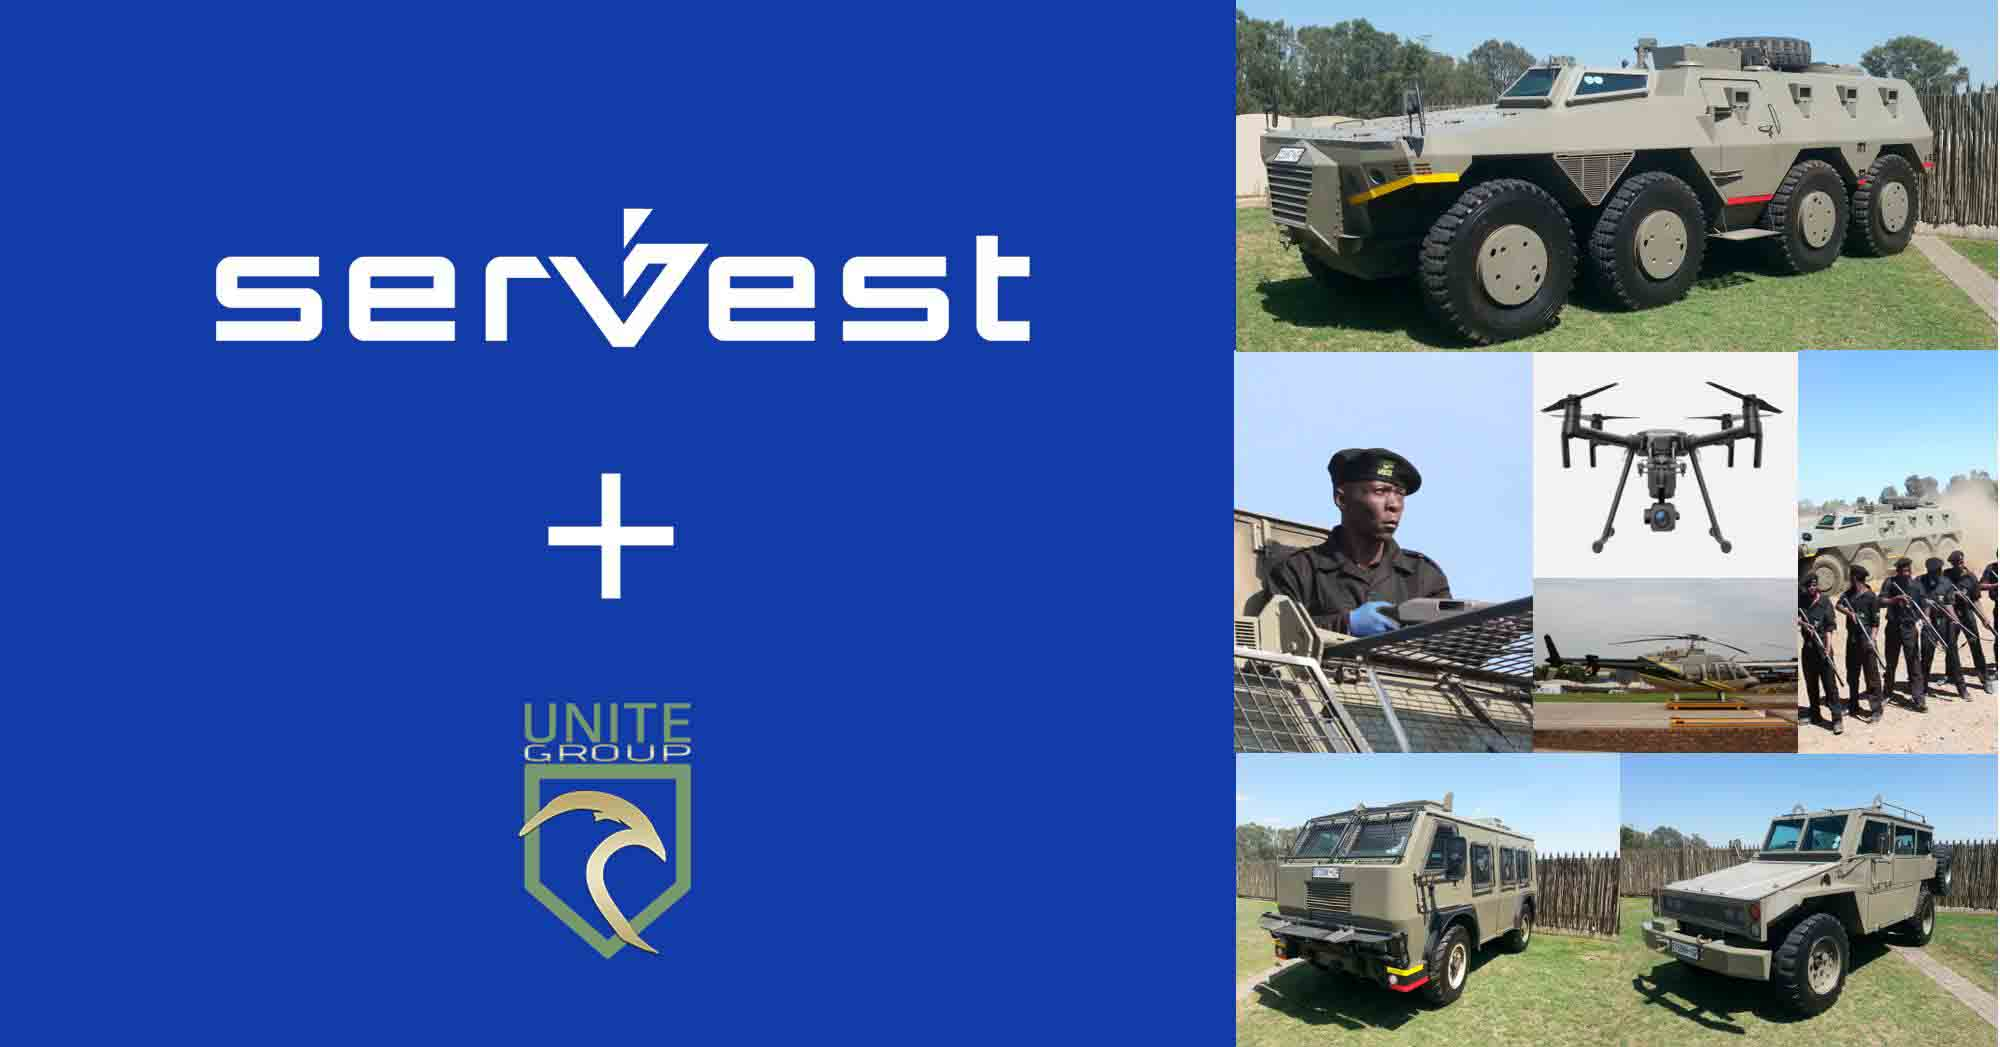 Servest acquires twenty-year-old specialist security interventions company Unite Group